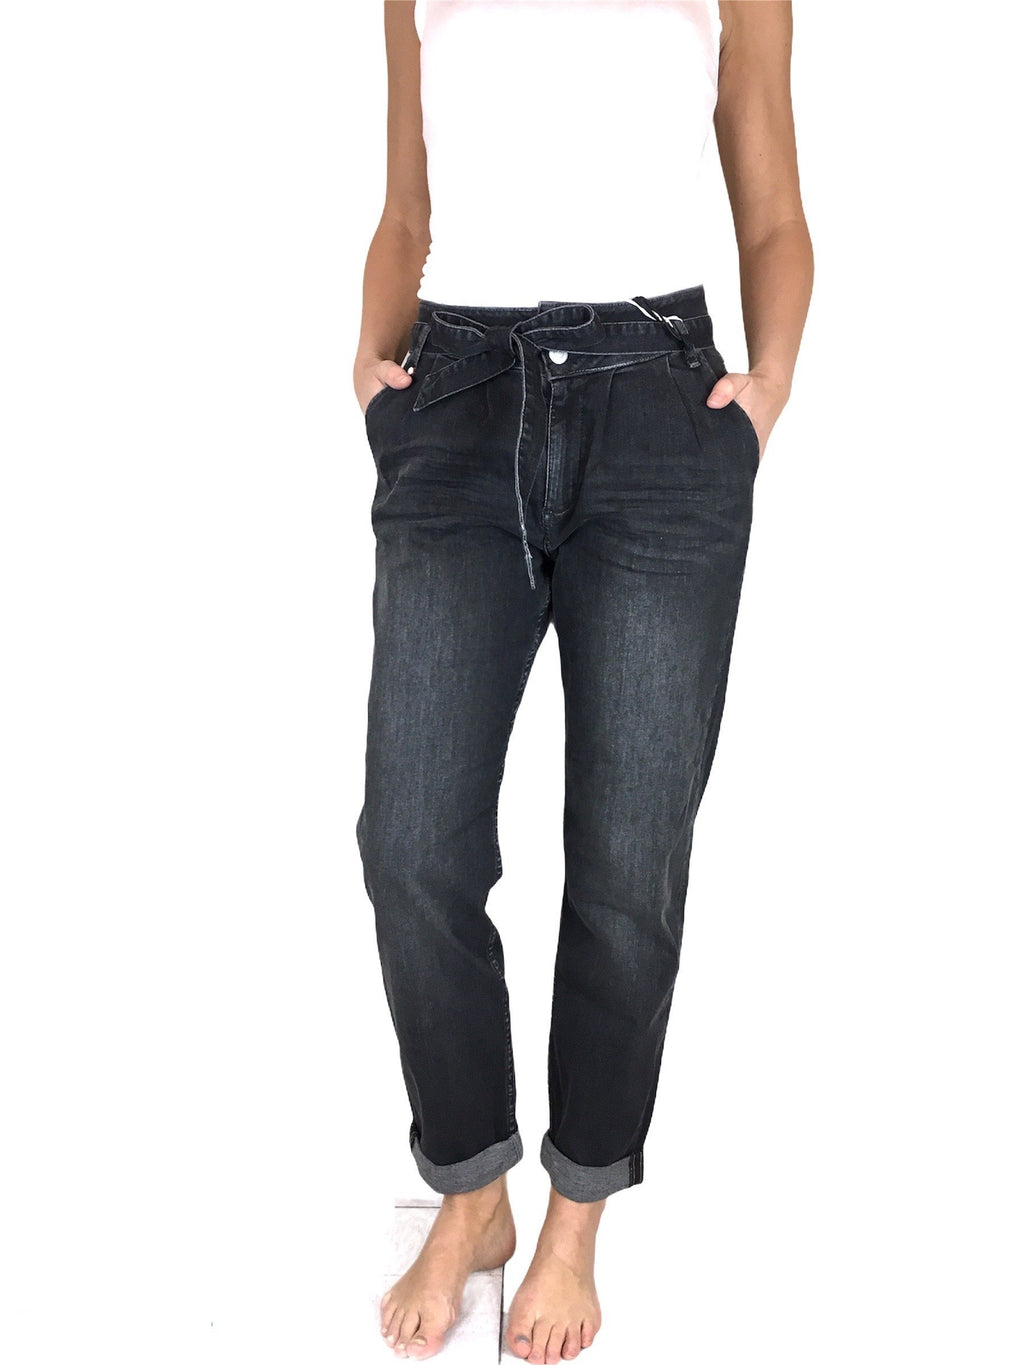 Mom Fit Jeans BluefireCo. RITA black used